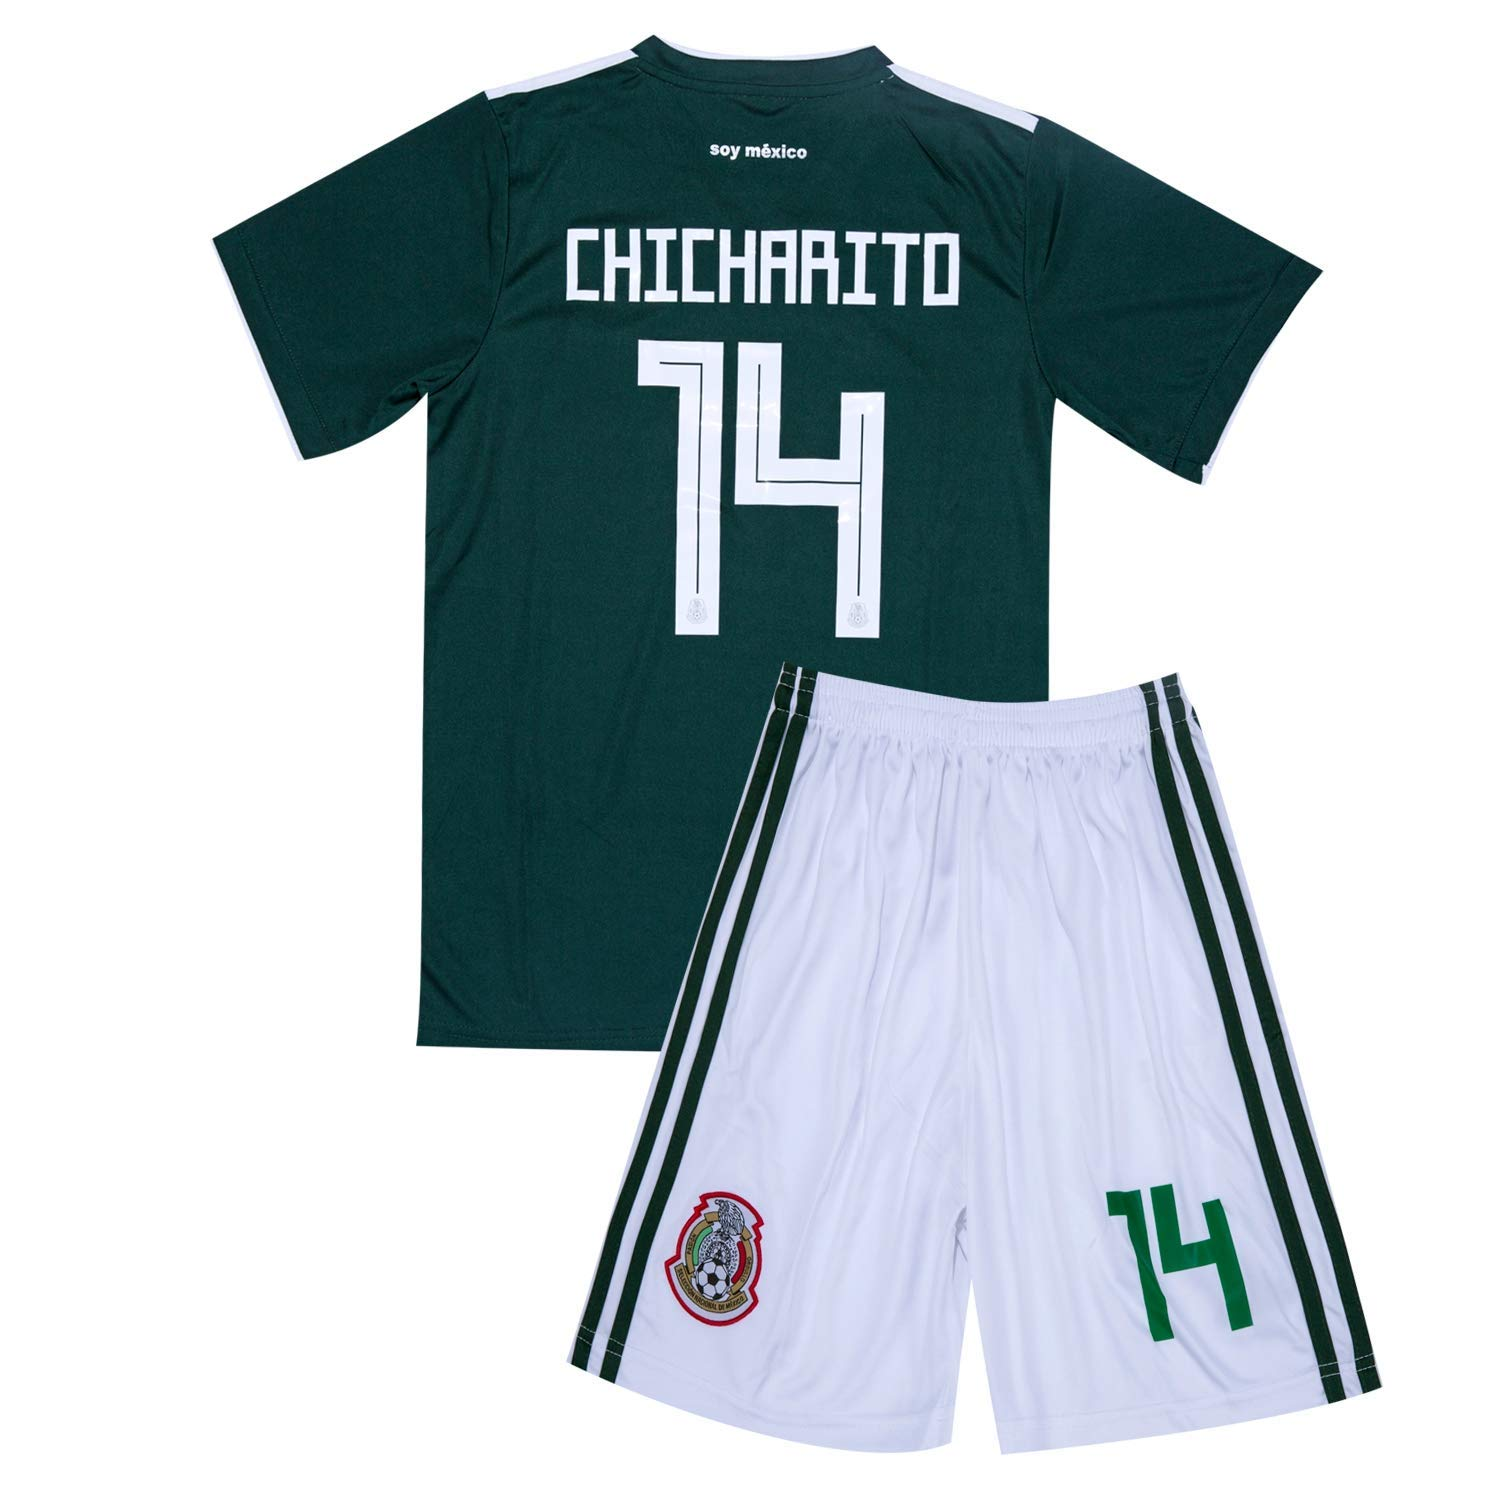 Get Quotations · 2017-2018 Mexico National Team  14 CHICHARITO Home Youth Soccer  Jersey   Shorts Green f632a4723fe